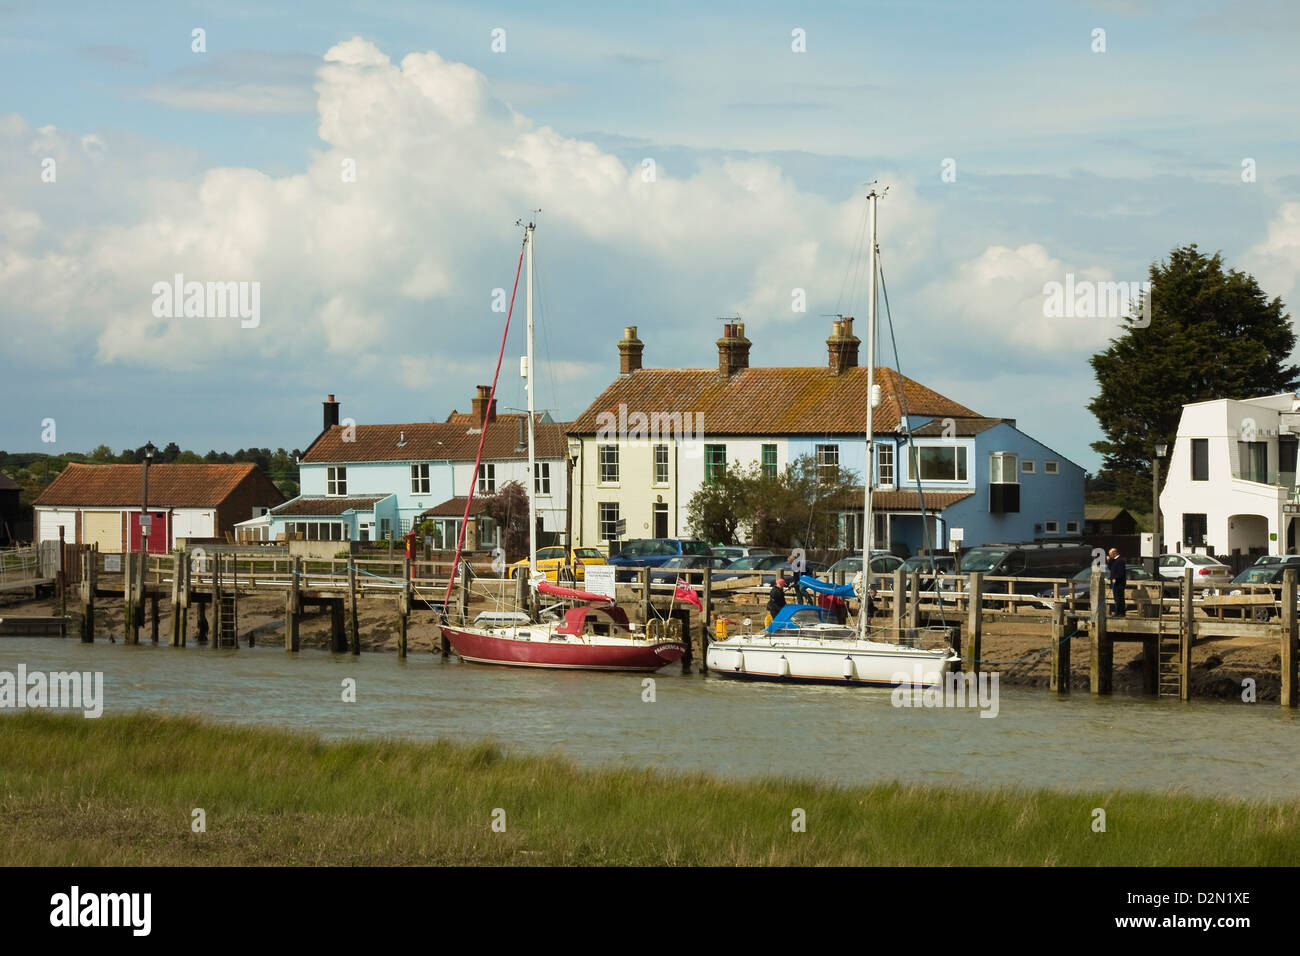 Looking across River Blyth towards houses and moored yachts on the Southwold bank, Walberswick, Suffolk, England, Stock Photo